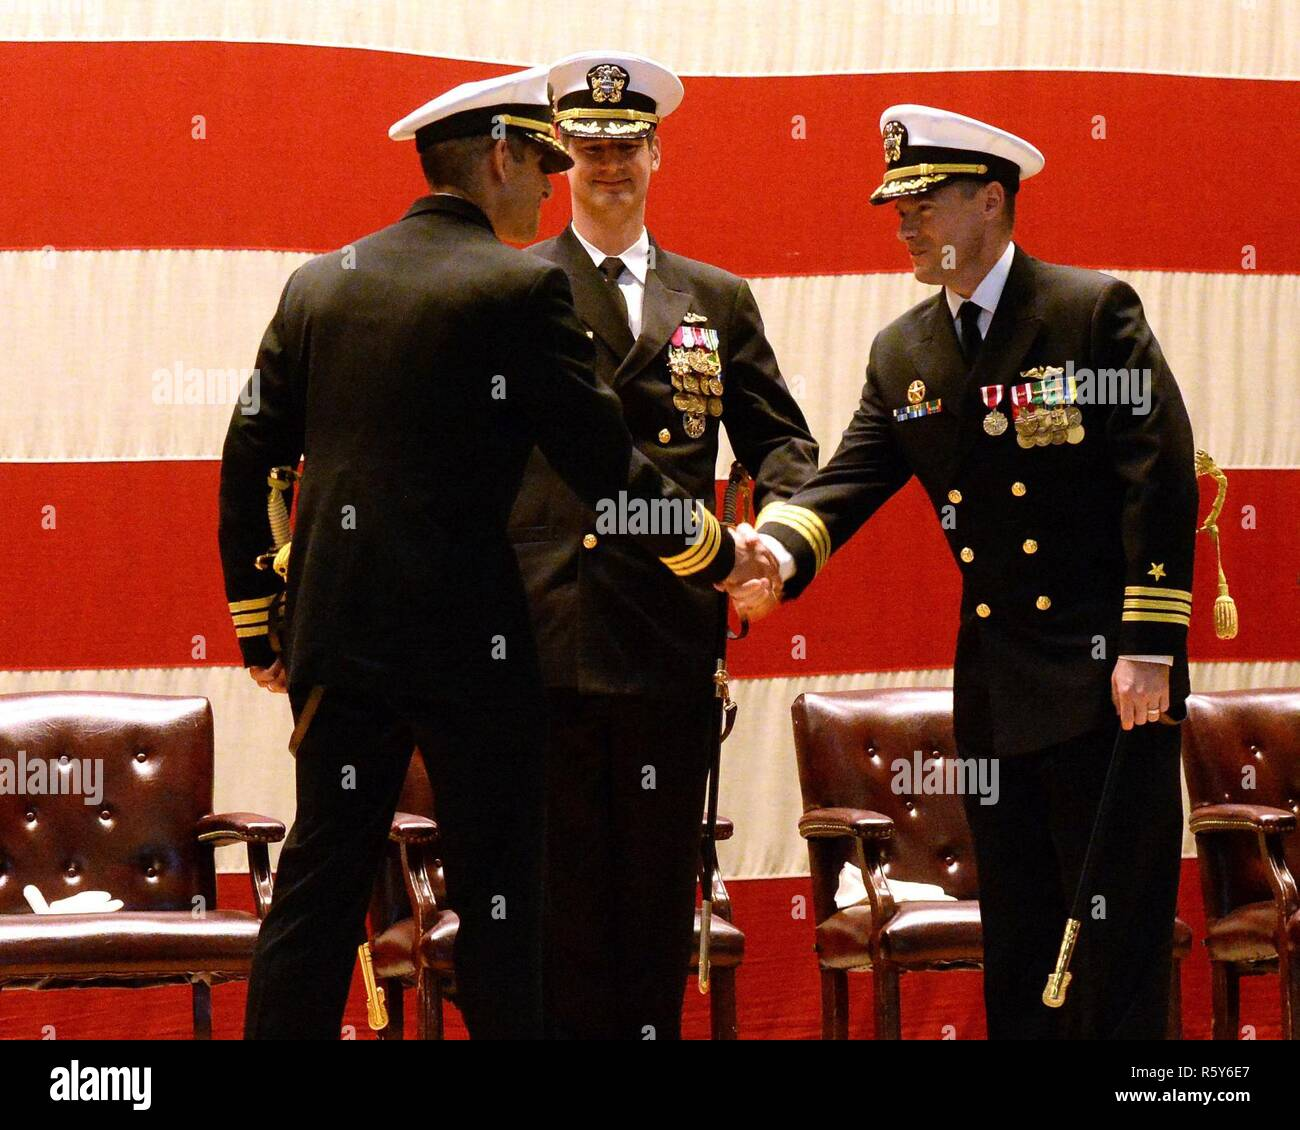 GROTON, Conn. (April 21, 2017) (Left) Virginia Class, fast-attack, submarine, USS San Juan (SSN 751)'s new Commanding Officer, Cmdr. Ravi Desai shakes hands with San Juan's former Commanding Officer, Cmdr. John Craddock after relieving him of command in the presence of Commander, Submarine Squadron Twelve Commodore, Capt. Ollie Lewis. Desai and Craddock exchanged command during a ceremony held in the Dealey Theater aboard Naval Submarine Base New London on April 21, 2017. - Stock Image